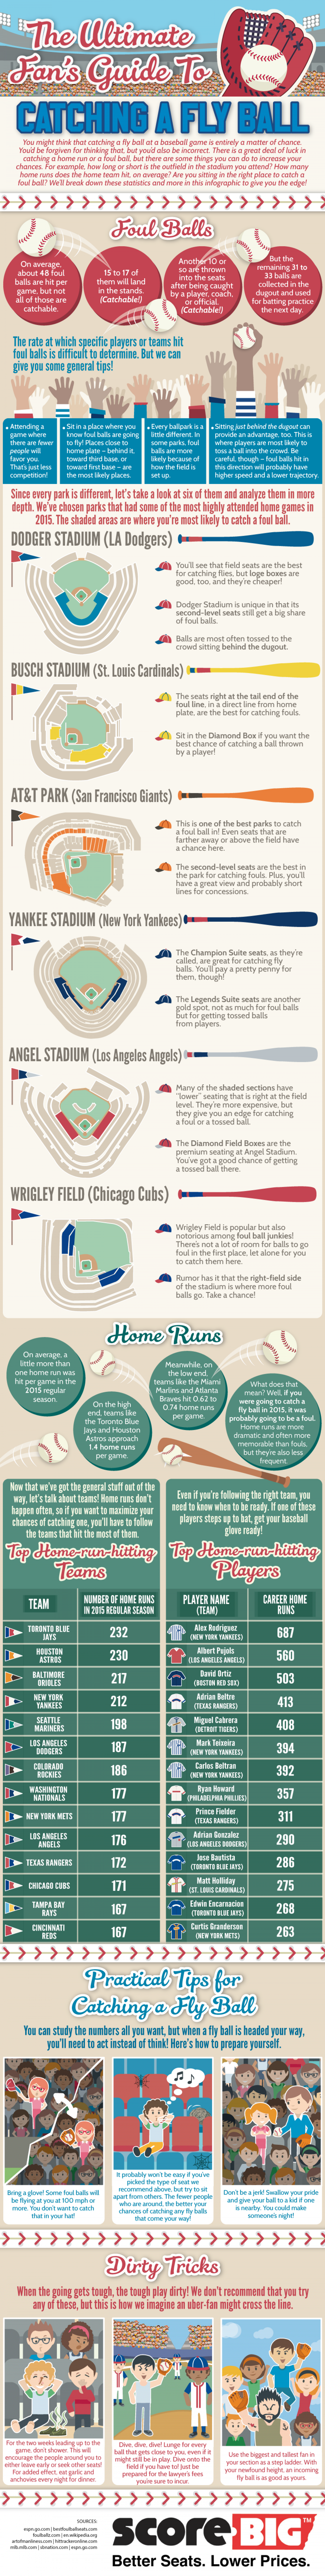 The Ultimate Fan's Guide to Catching a Fly Ball Infographic